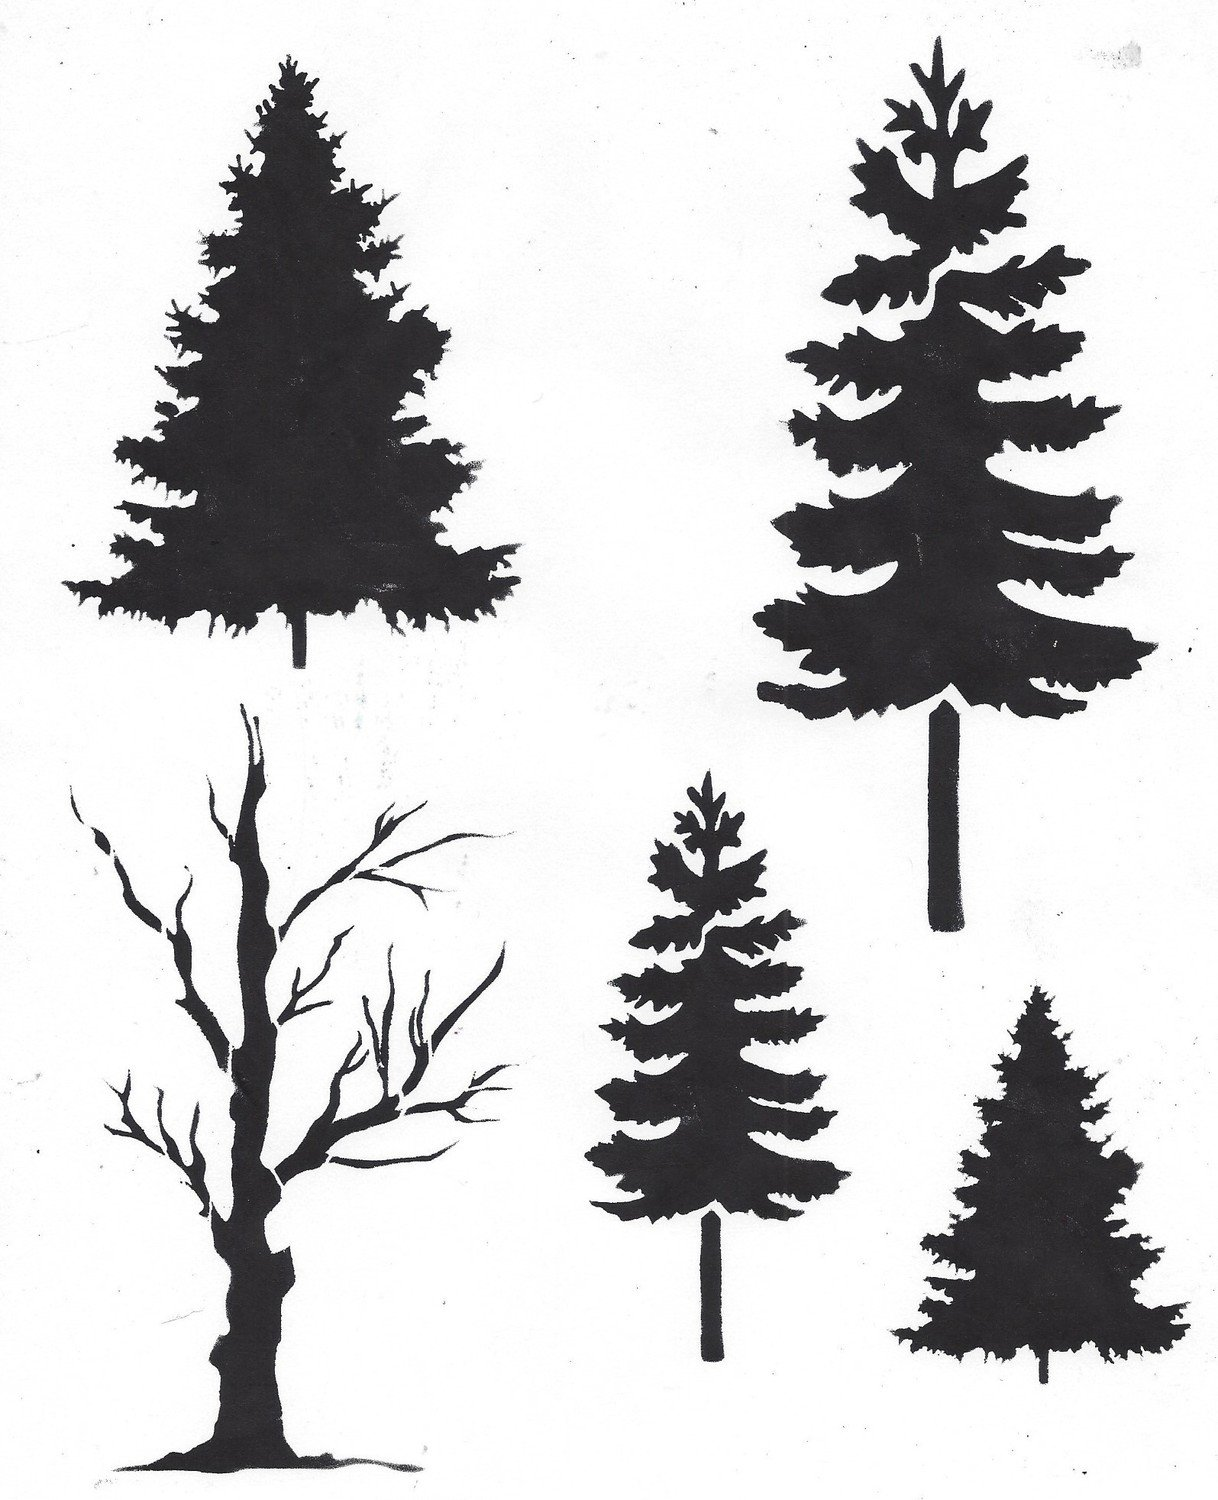 Trees with Masks 8x10